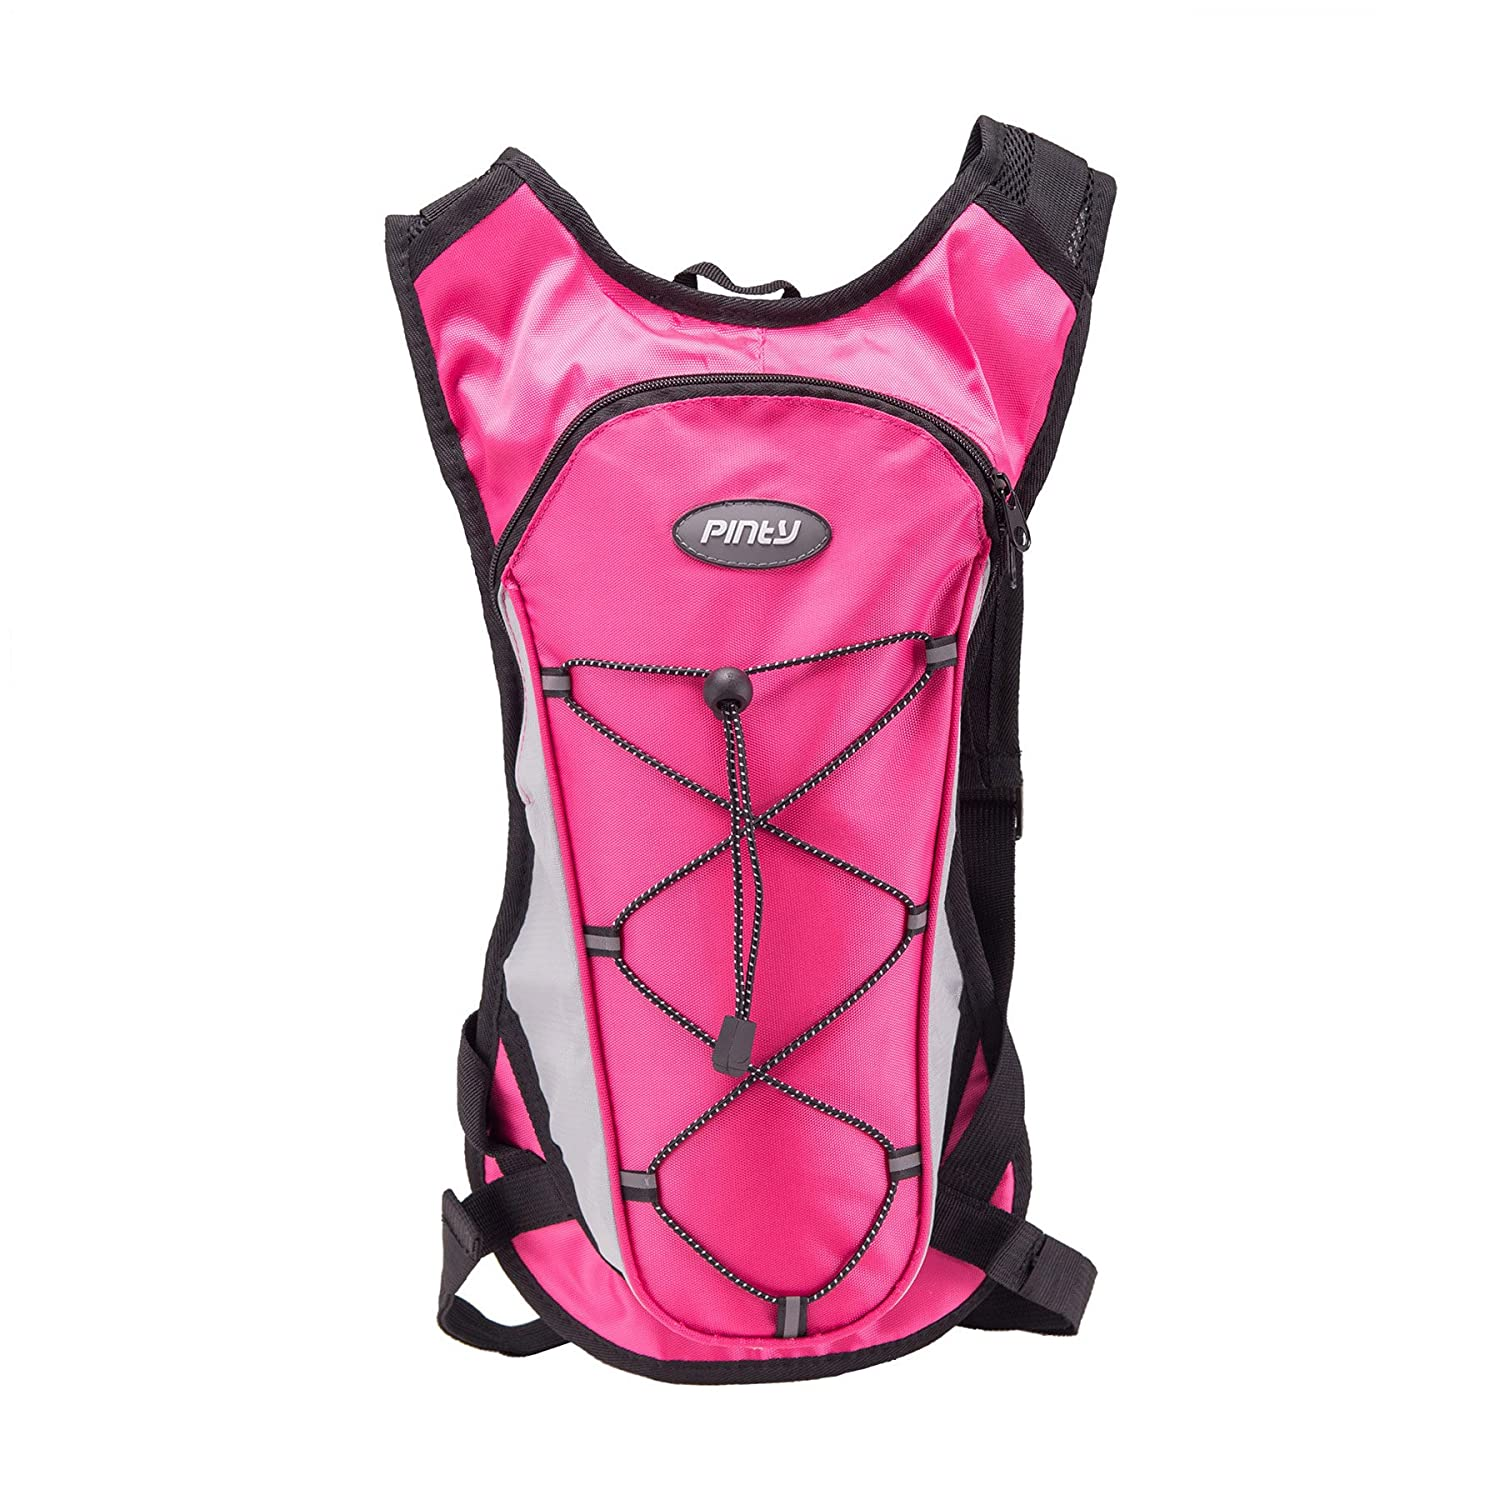 Pinty Hydration Backpack Pack with 2L Water Bladder for One Day Outdoor Climbing, Hiking, Cycling Pinty BWBN PK